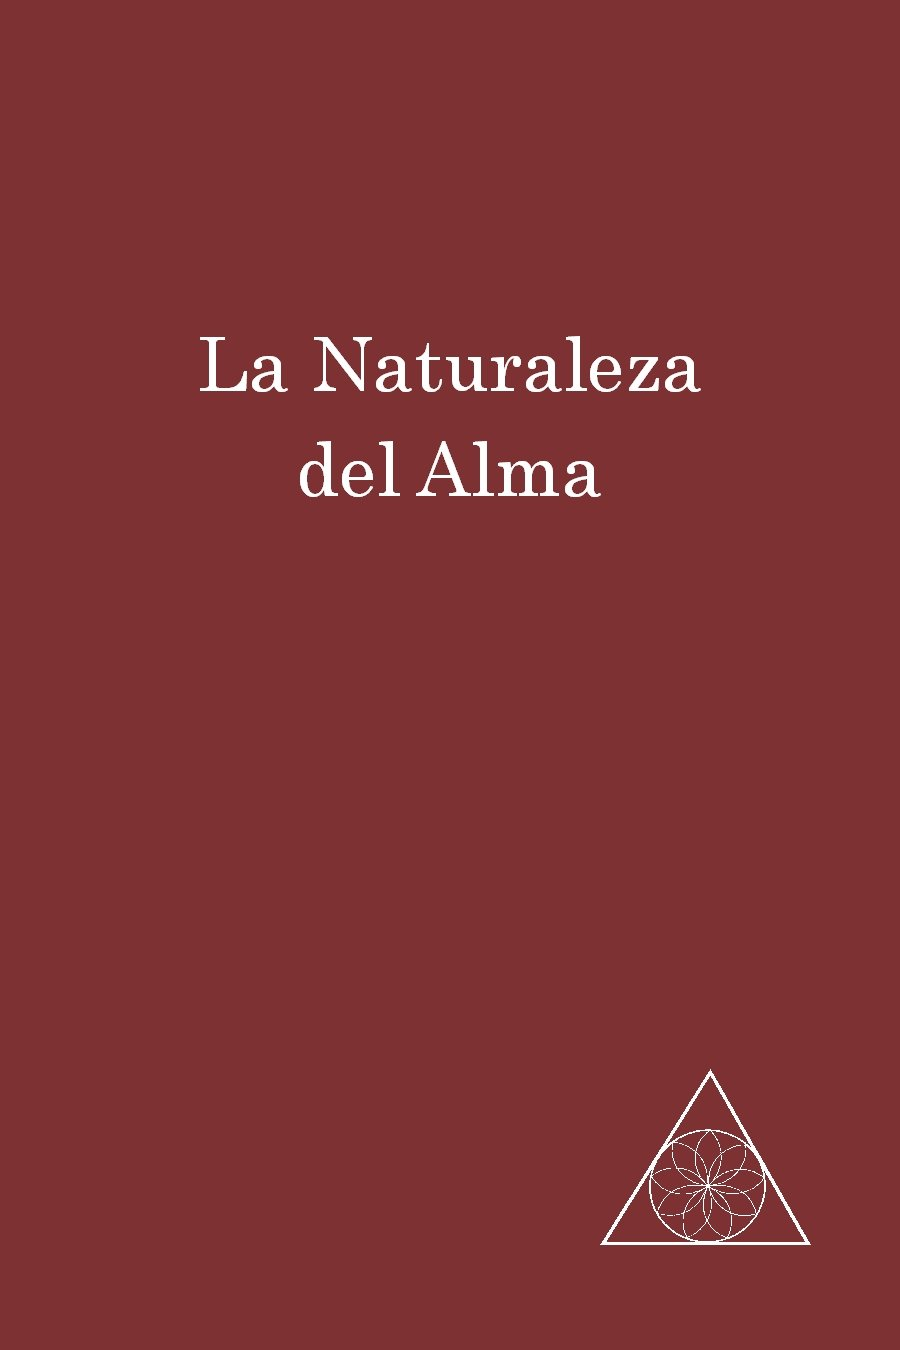 La Naturaleza del Alma eBook: Lucille Cedercrans: Amazon.es ...